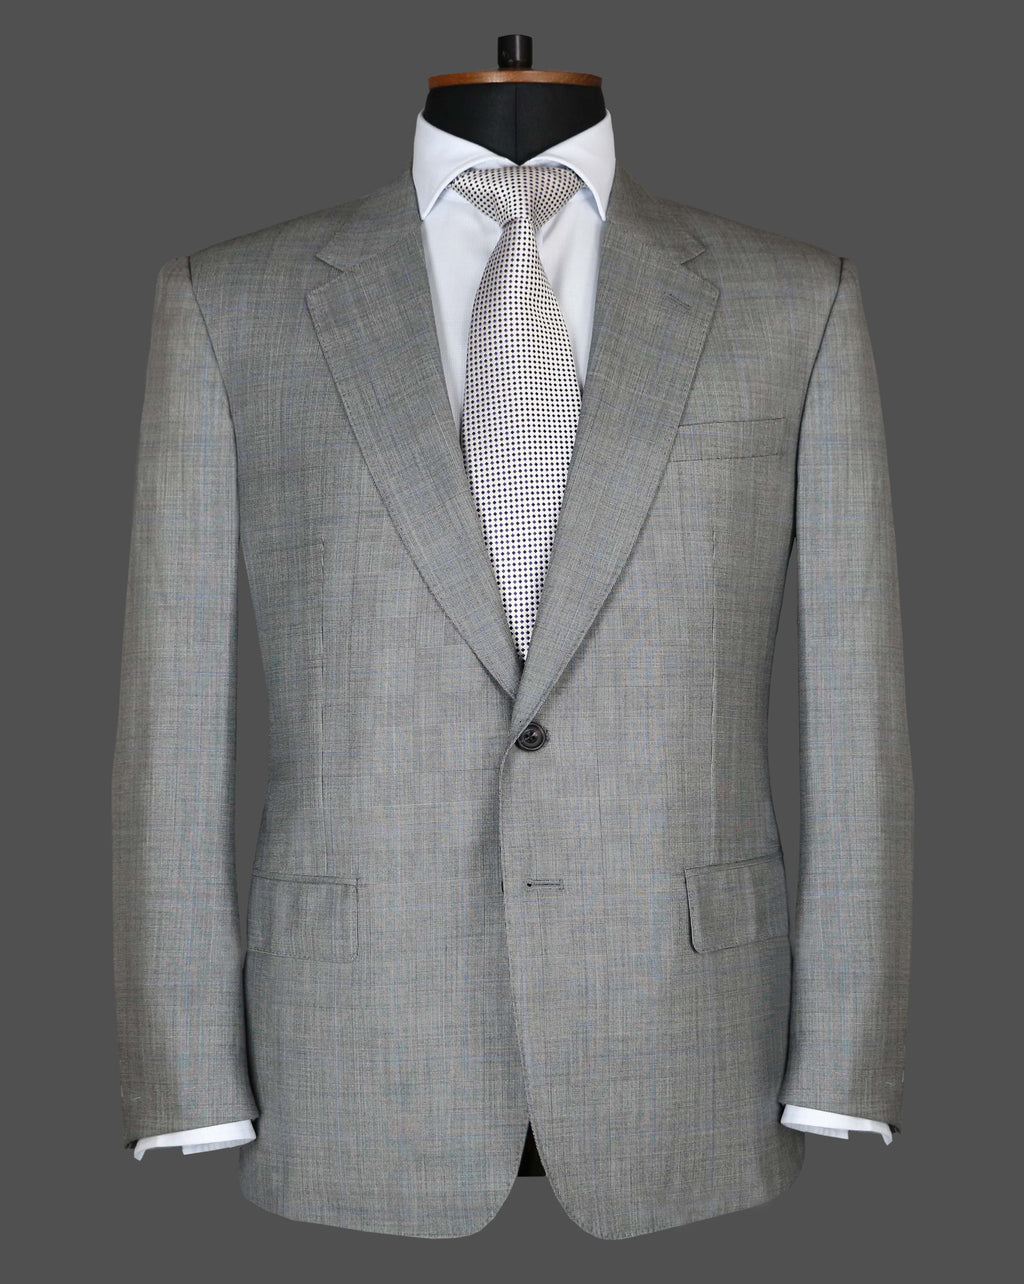 TLA049 - Grey Check Suit